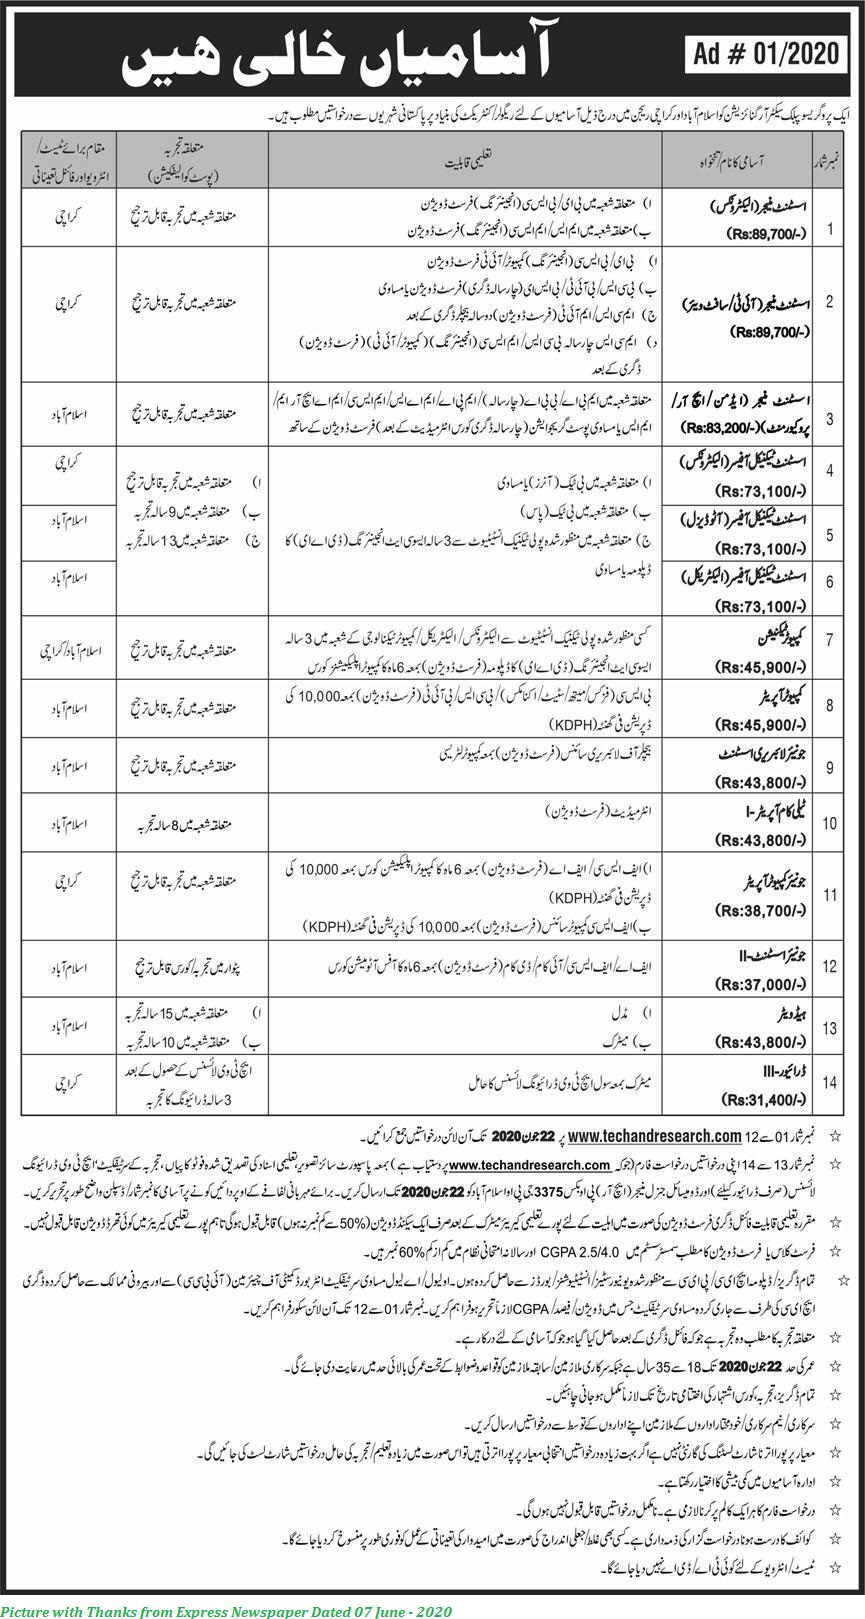 Atomic Energy Commission Jobs 2020 - Latest Jobs in NASCOM Atomic Energy Ad 01/2020